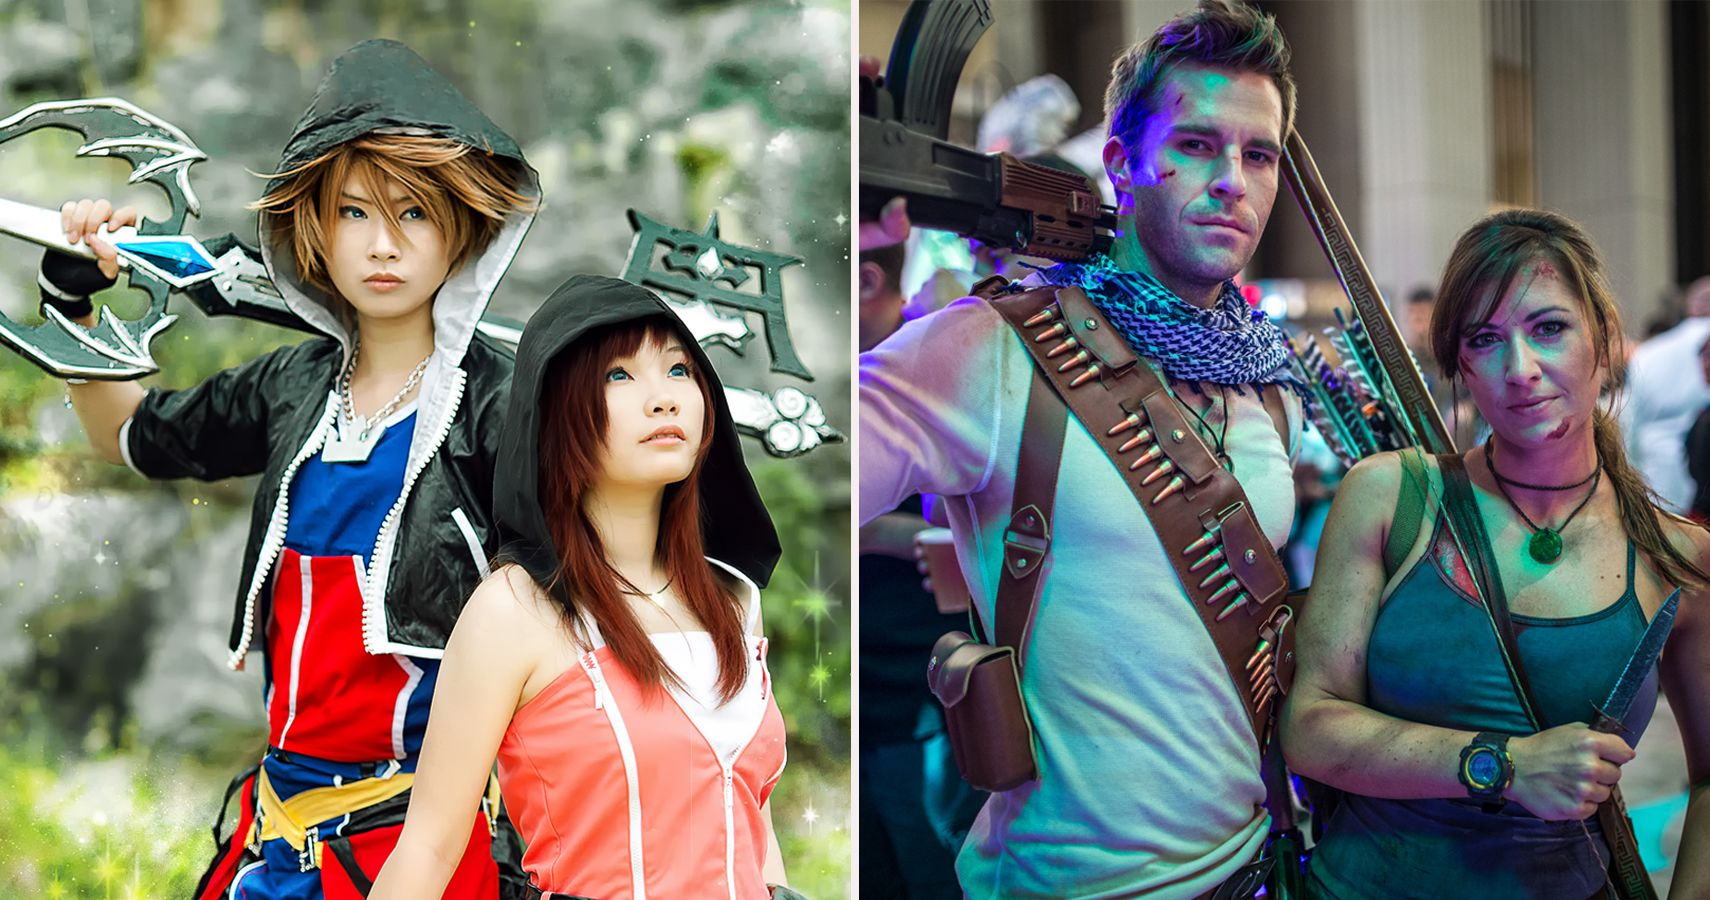 20 Video Game Couple Cosplays That Are #RelationshipGoals